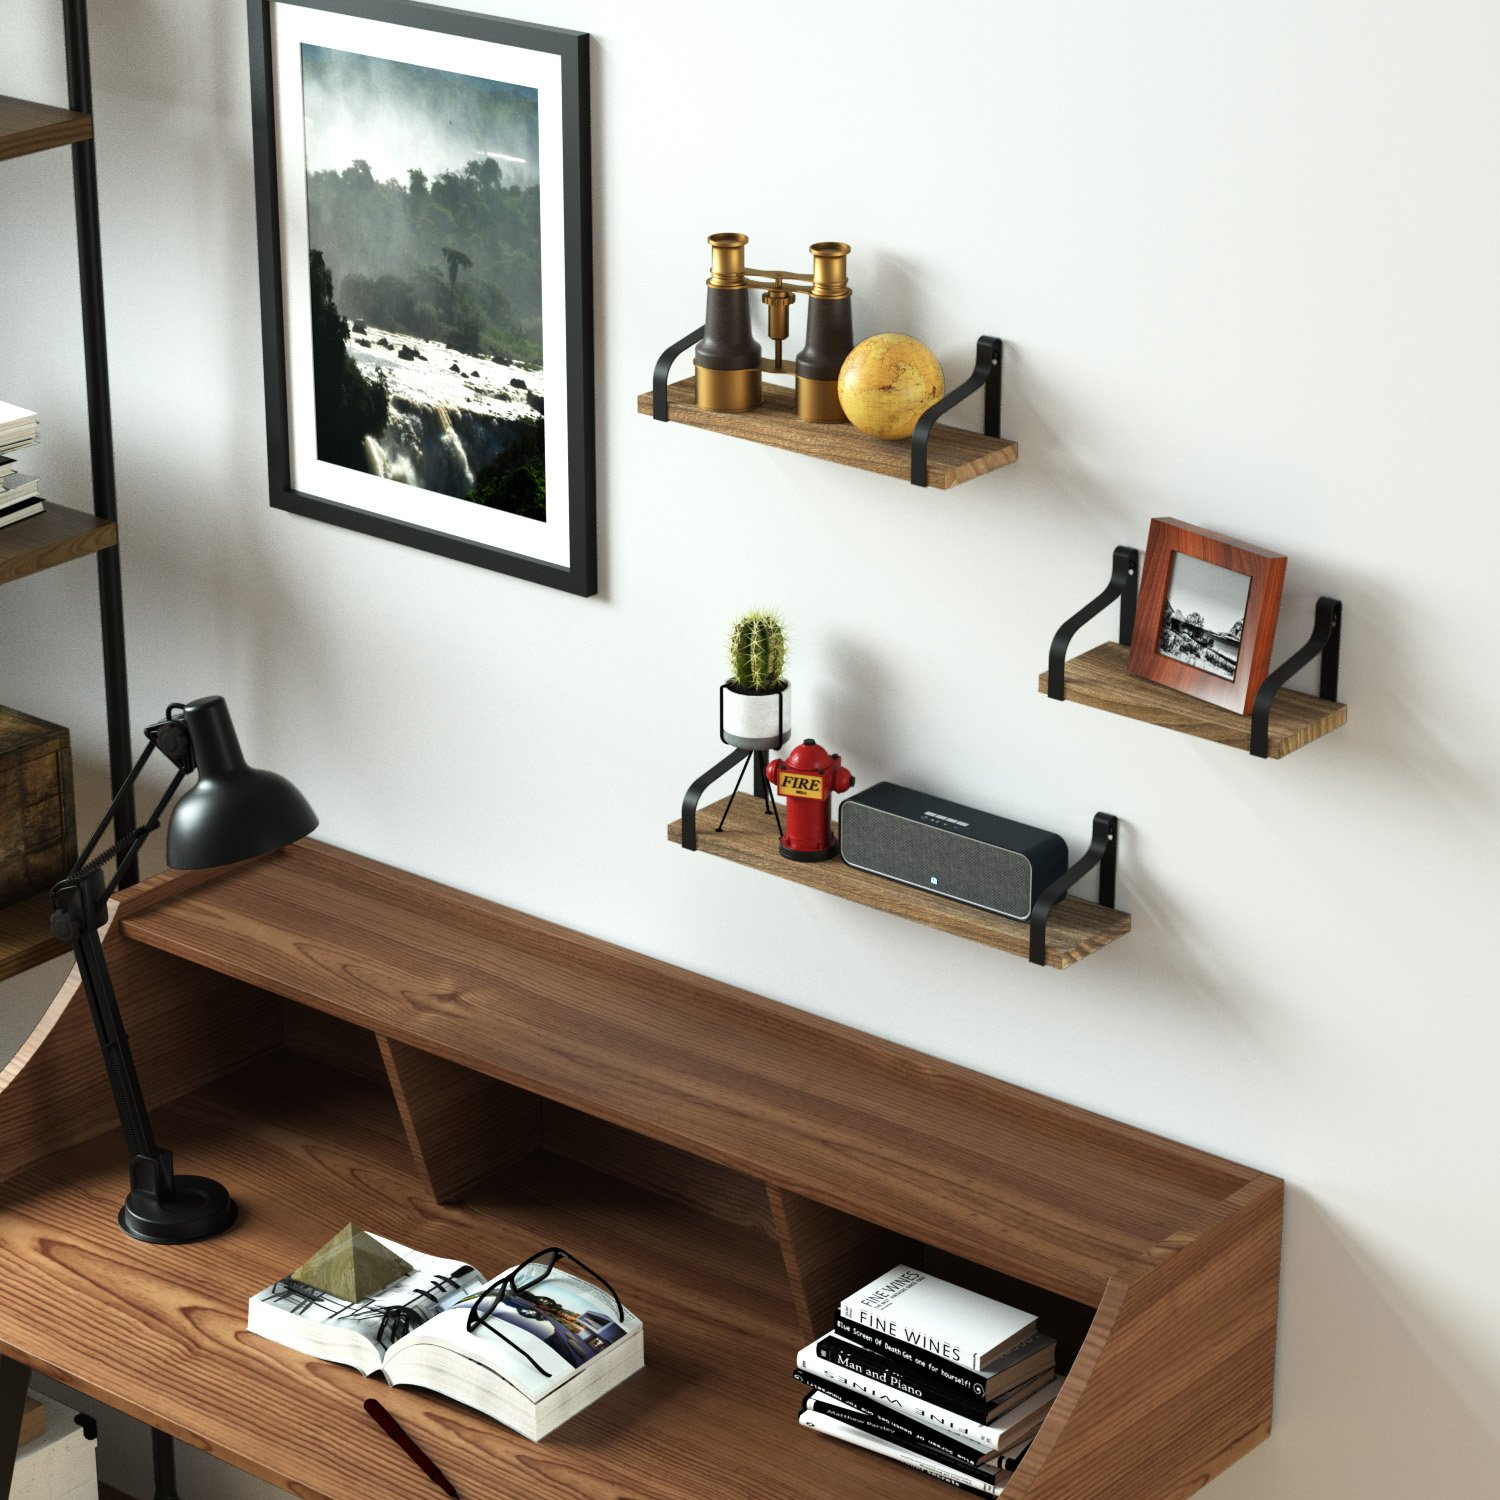 Love-KANKEI Floating Shelves Wall Mounted Set of 3, Rustic Wood Wall Storage Shelves for Bedroom, Living Room, Bathroom, Kitchen, Office and More by Love-KANKEI (Image #3)